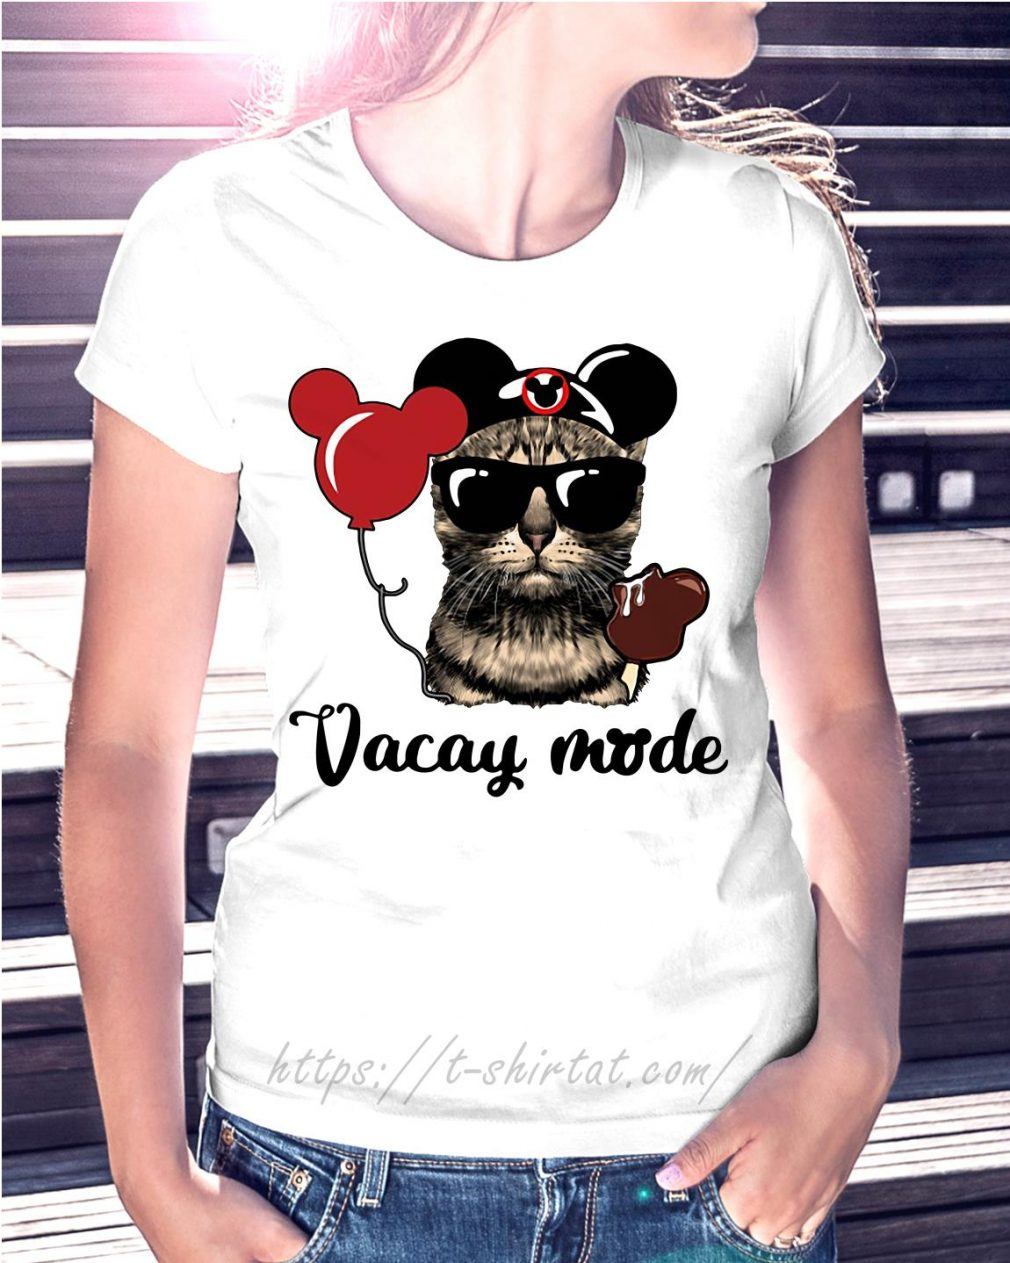 Cat with Mickey Mouse ears vacay mode T-shirt